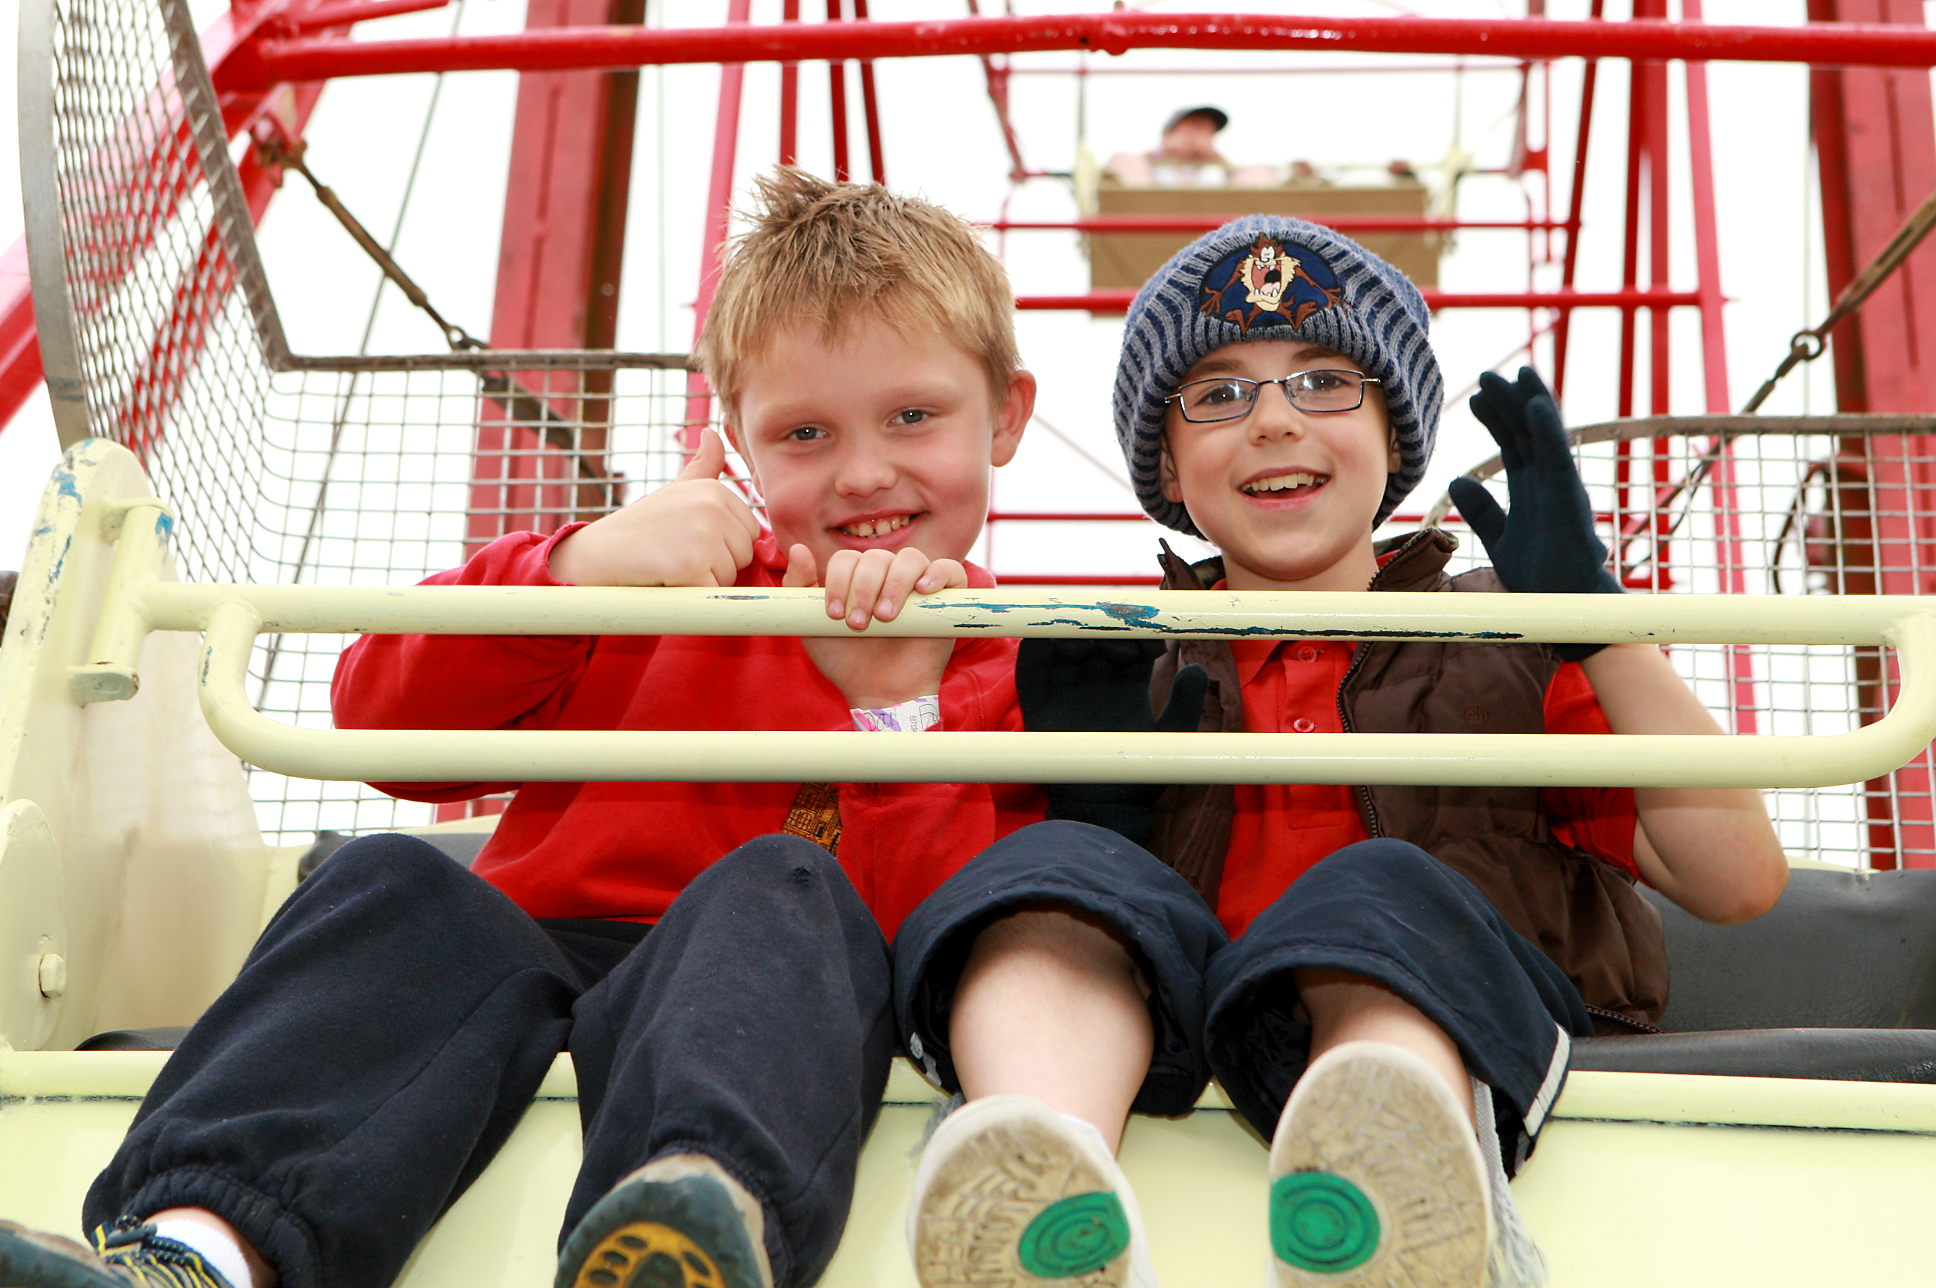 Two young boys on a ferris wheel